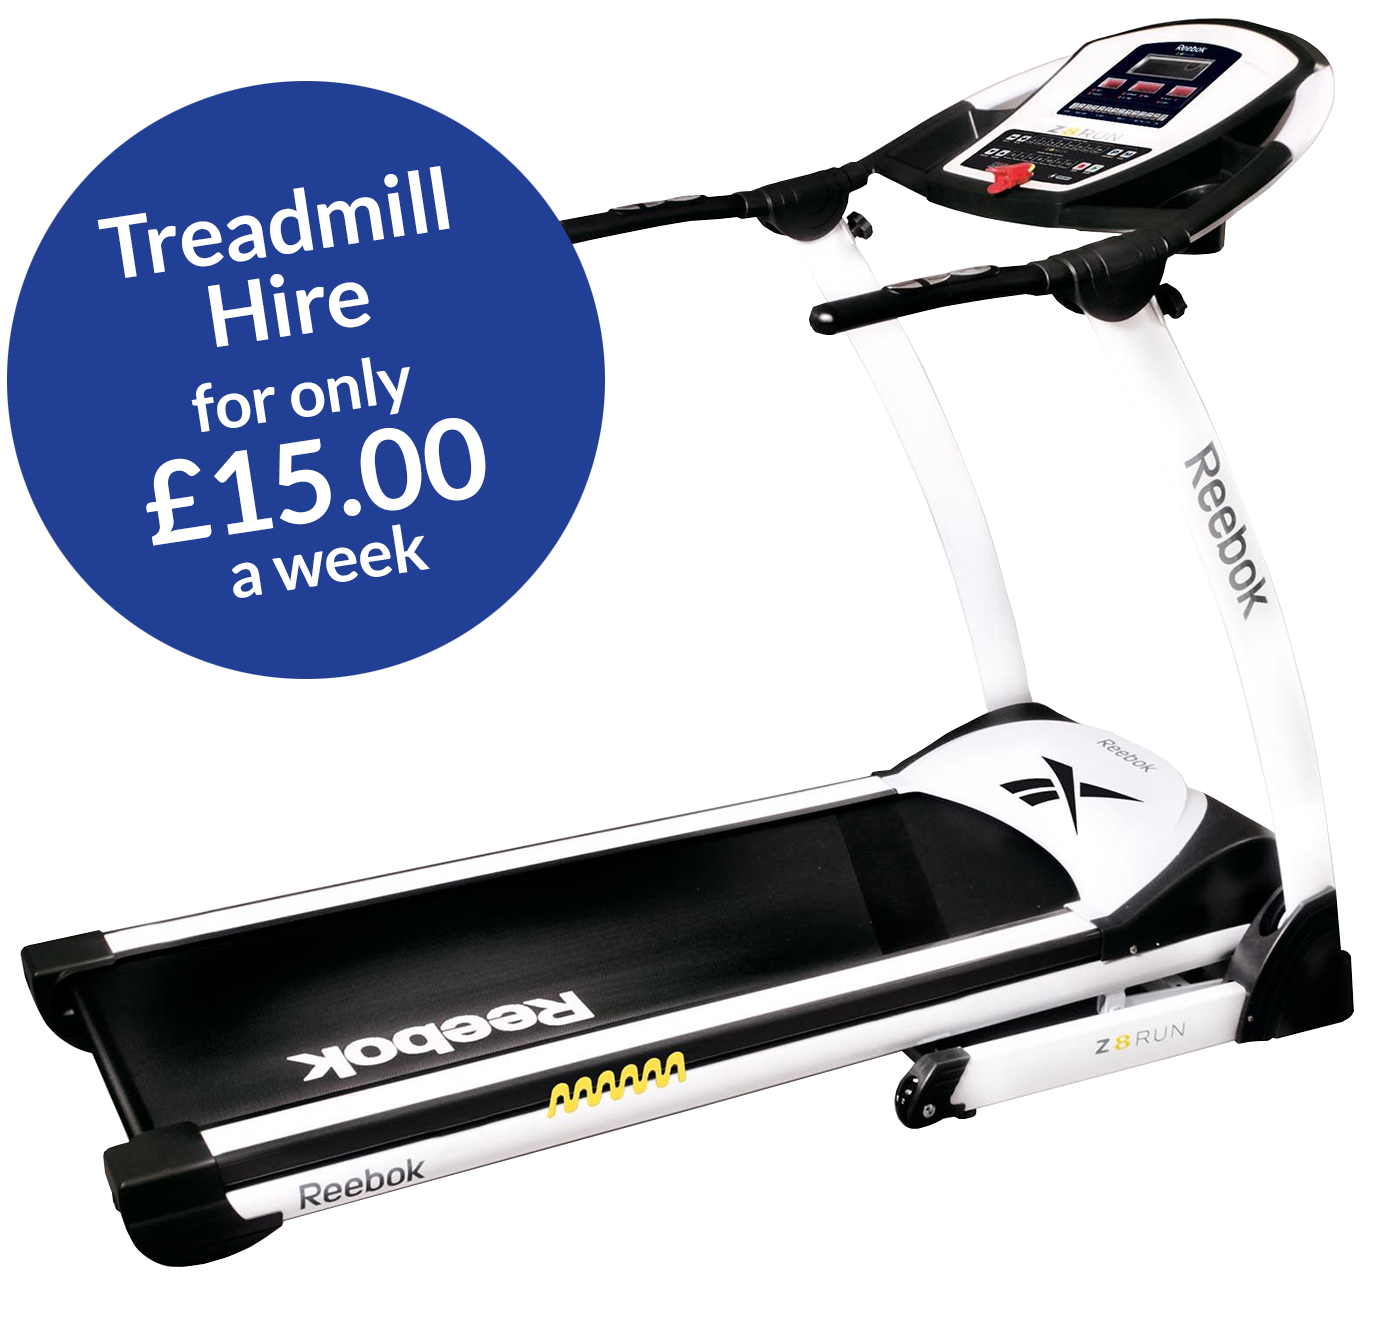 Treadmill Hire in Hull